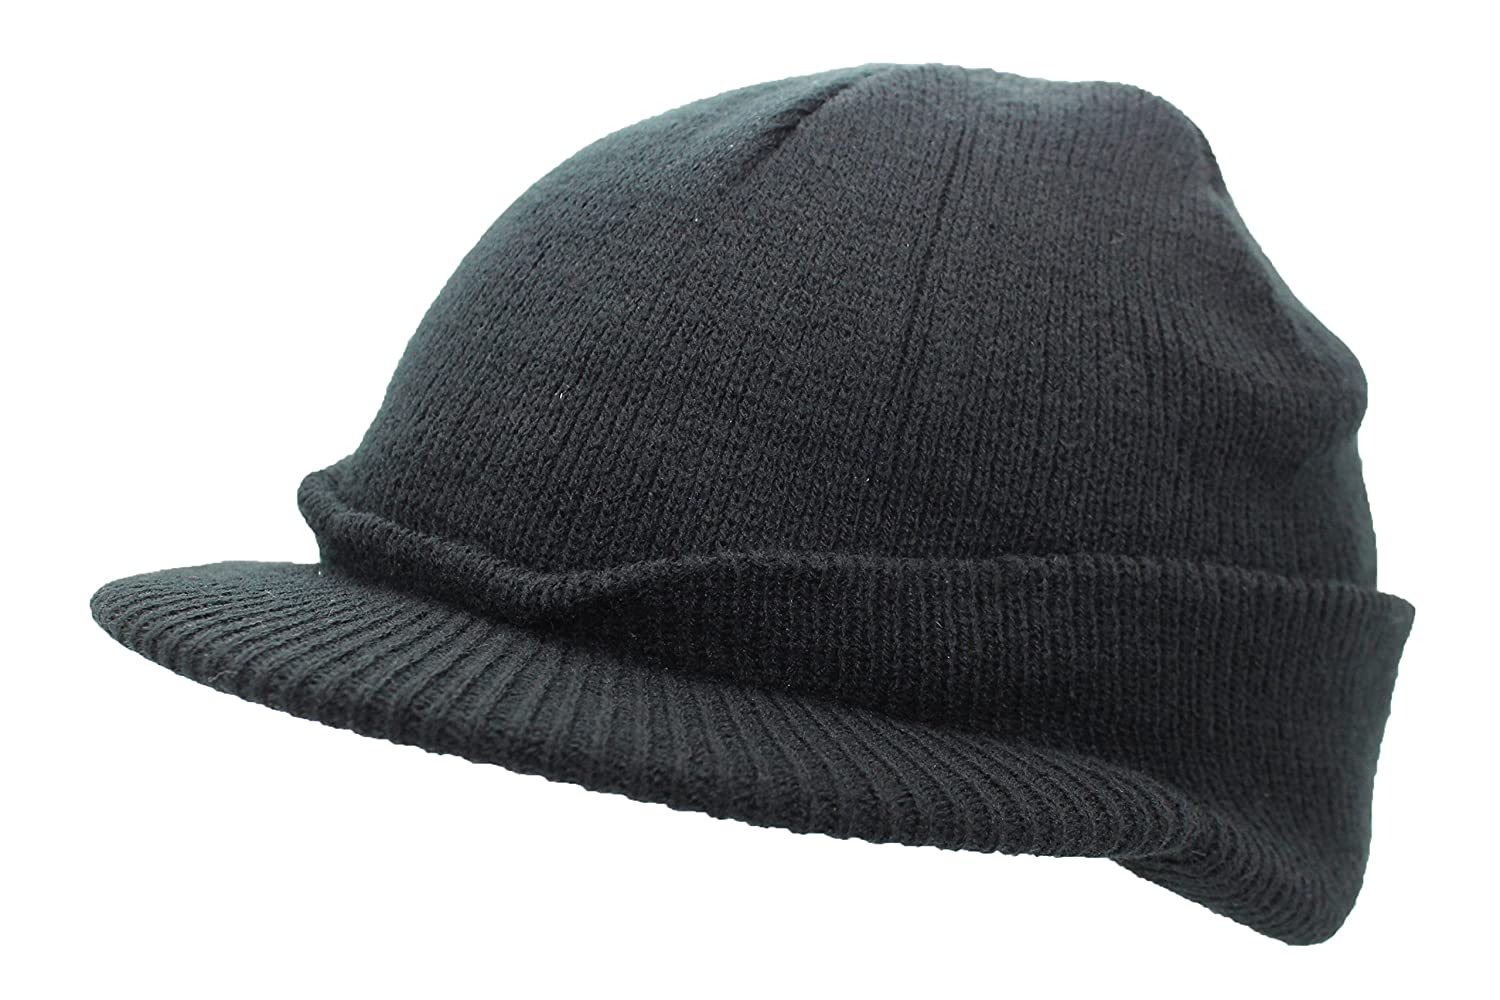 b2a158bd86a Black US Army Style Cadet Peaked Jeep Cap Fine Knitted Winter Peak Beanie  Hat: Amazon.co.uk: Clothing